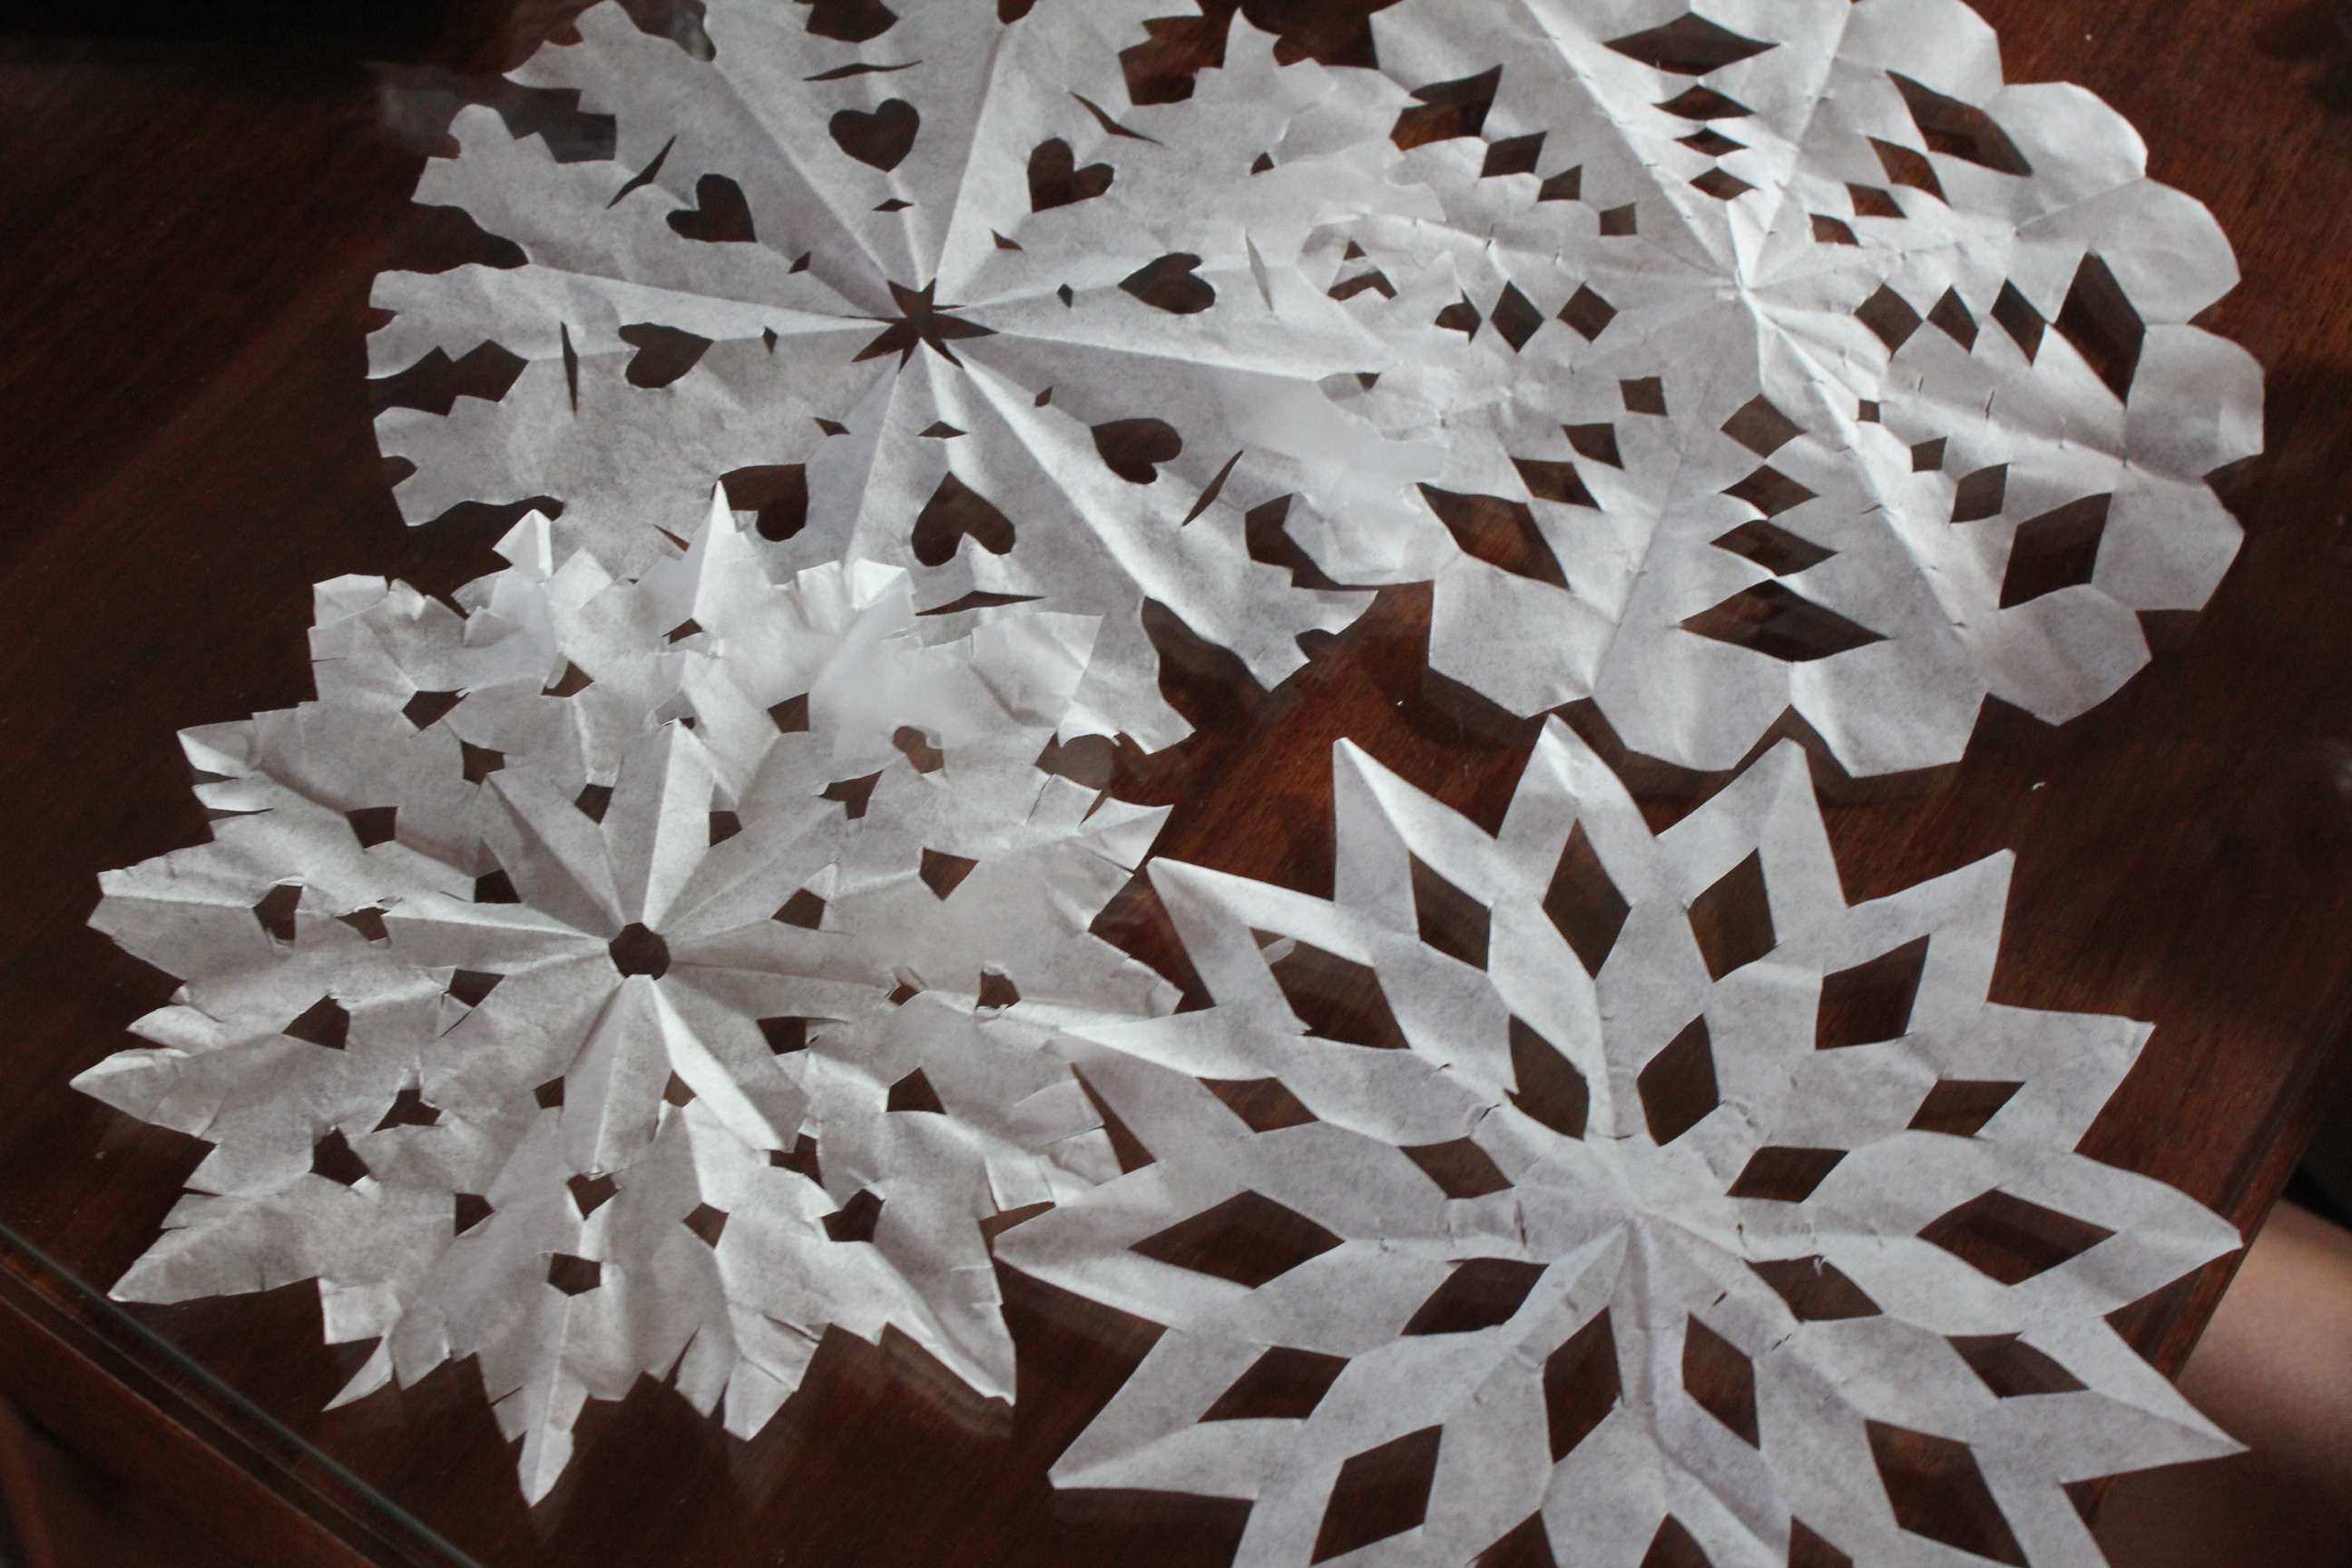 Cool Diy Snowflakes Projects